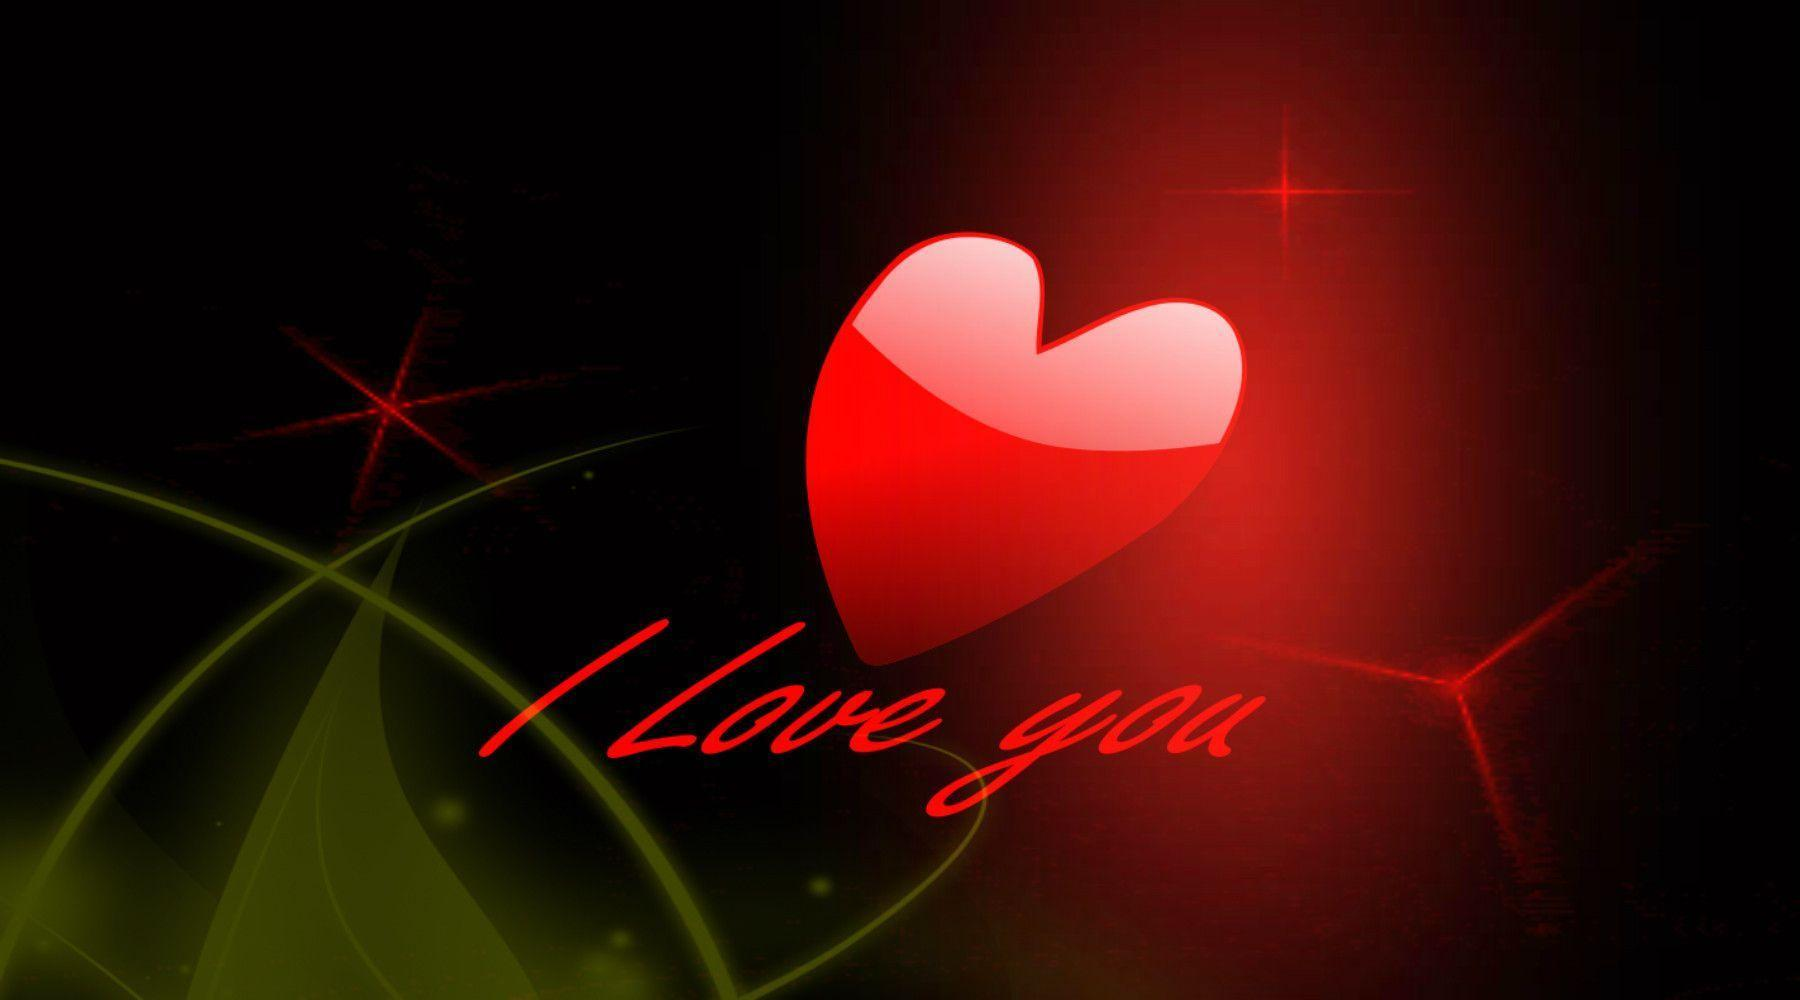 Love Desktop Wallpaper 3d : I Love You Wallpapers - Wallpaper cave